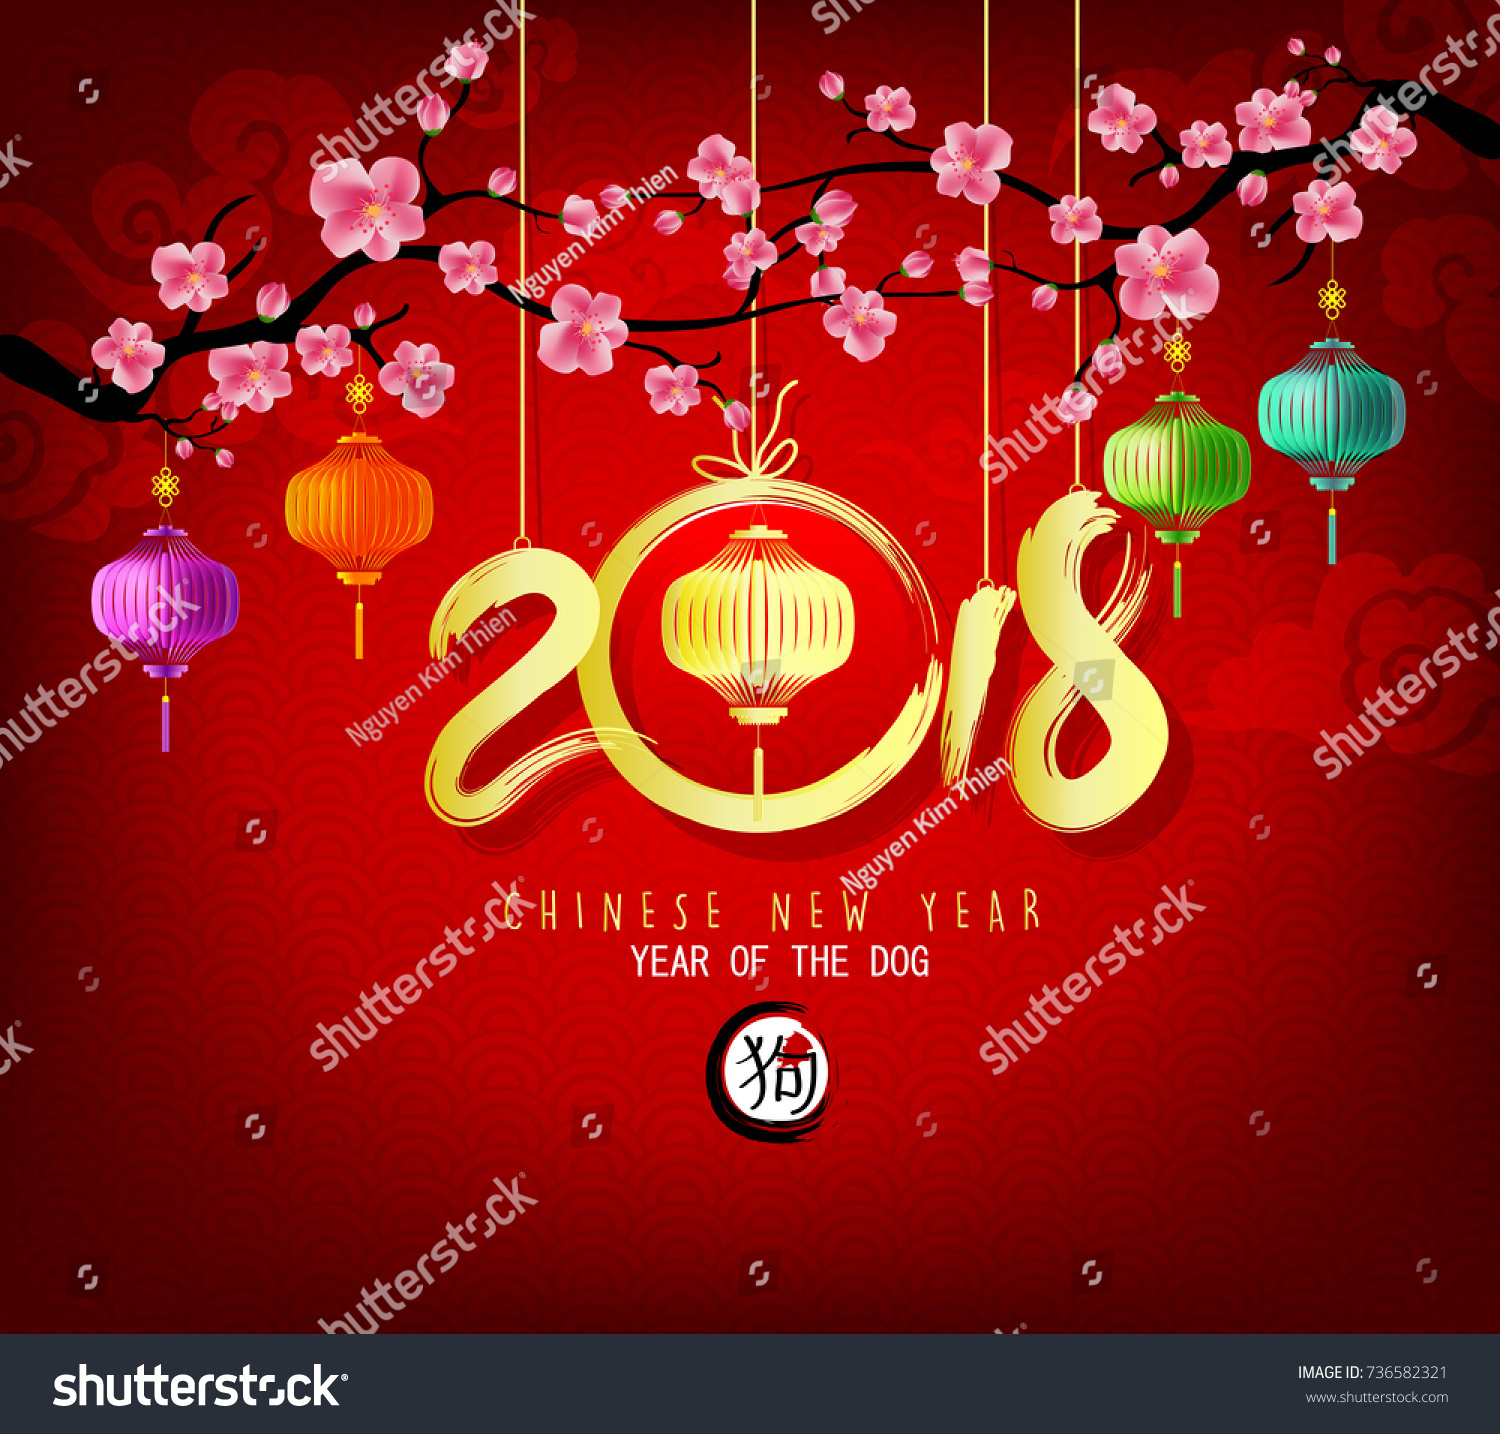 Happy new year 2018 greeting card stock illustration 736582321 happy new year 2018 greeting card chinese new year of ther dog m4hsunfo